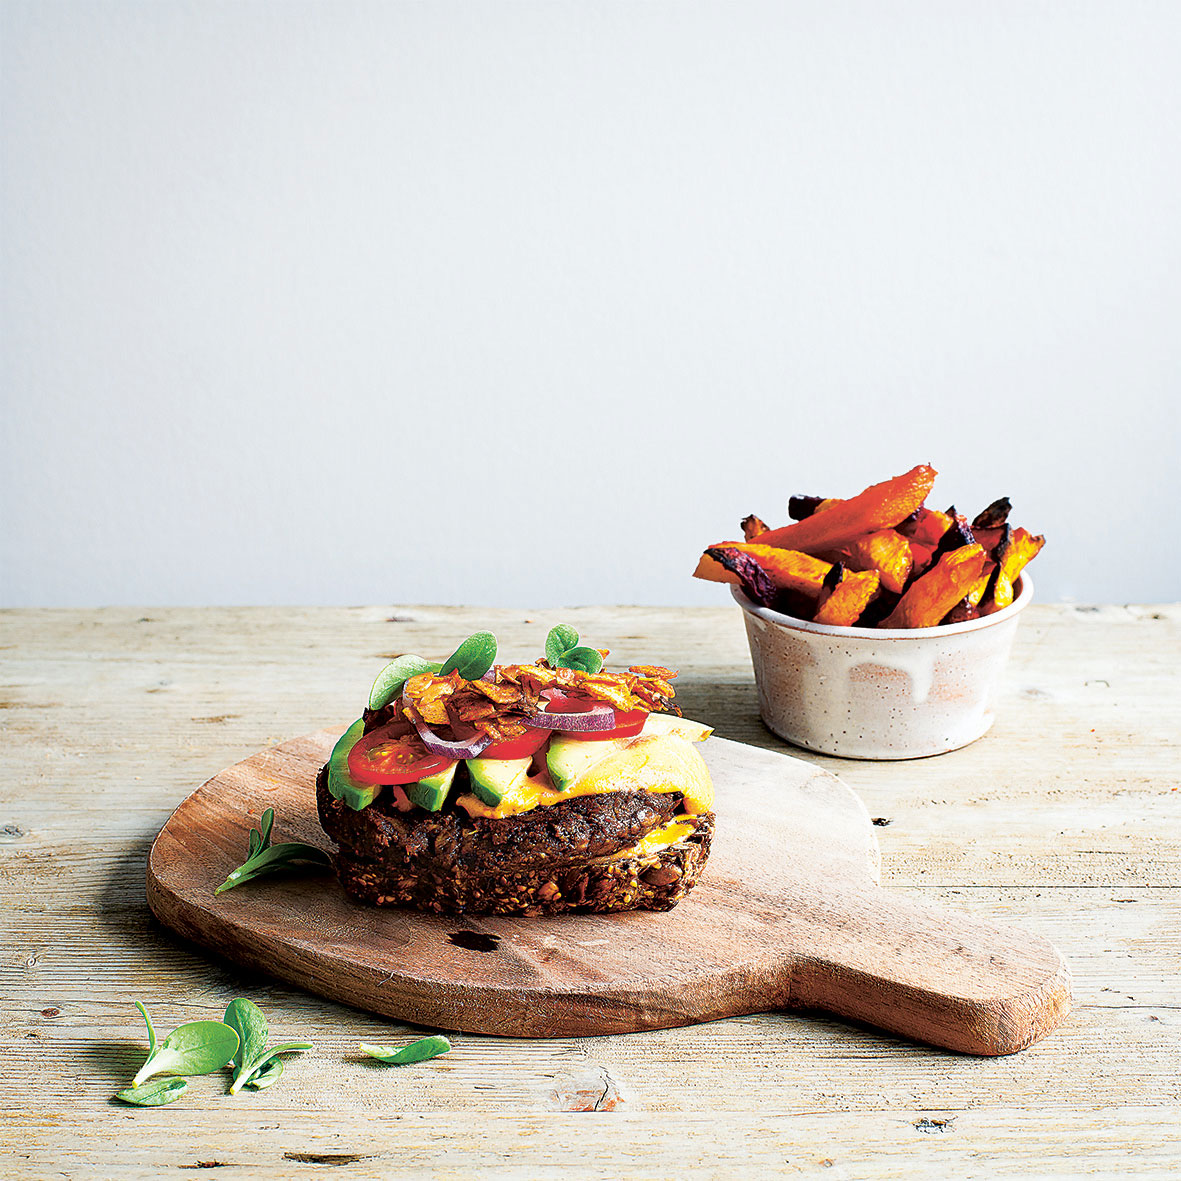 Vegan Burgers and Root Vegetable Fries. Photography by Simon Bajada